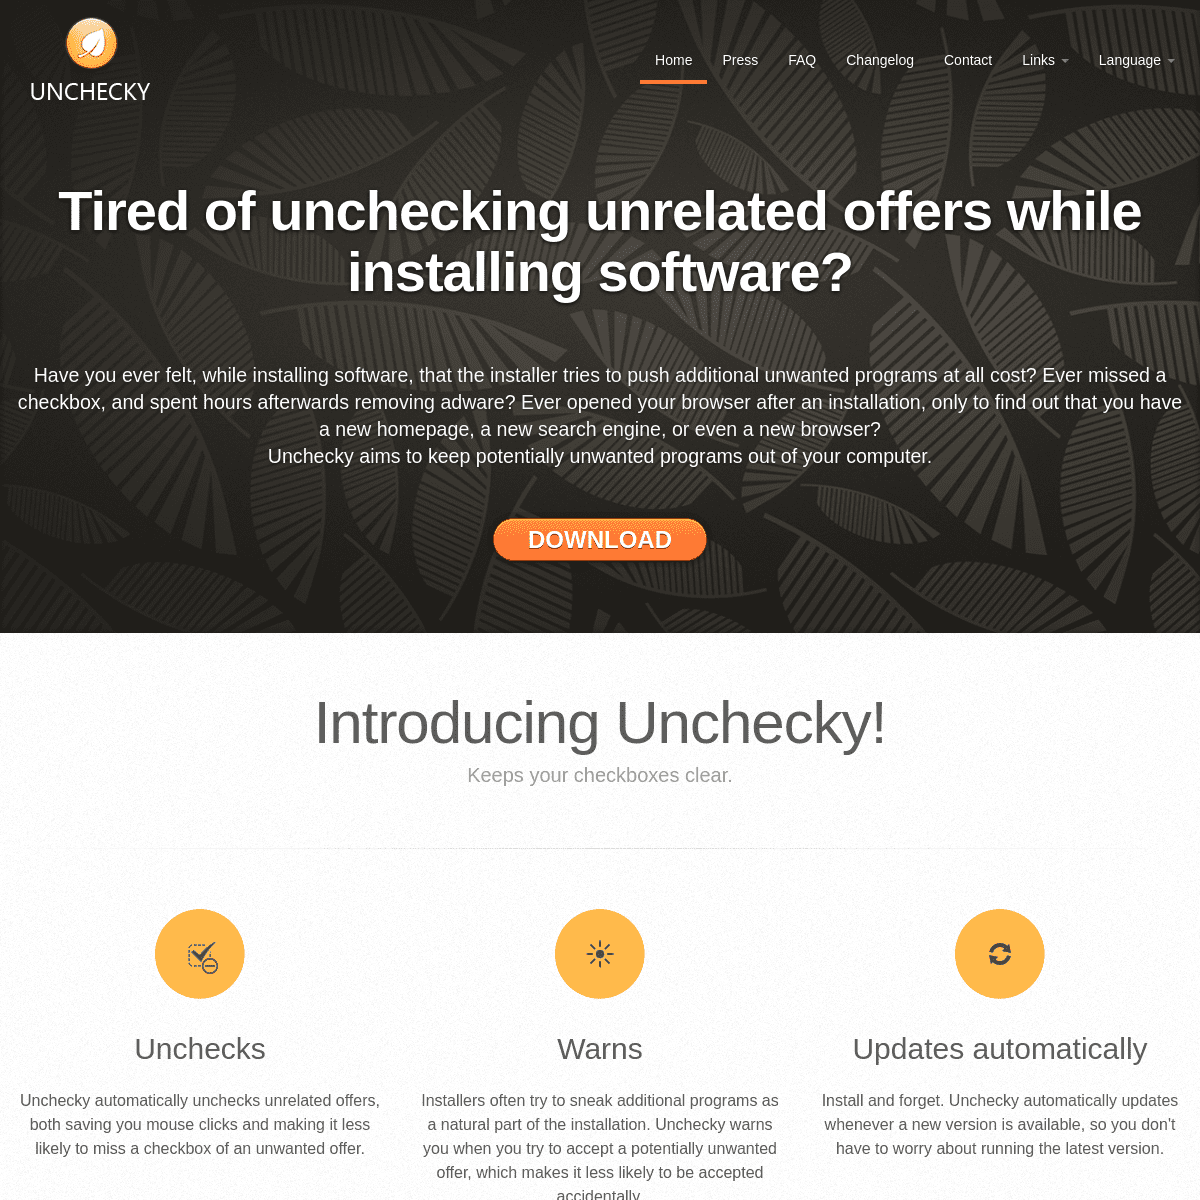 Unchecky - Keeps your checkboxes clear